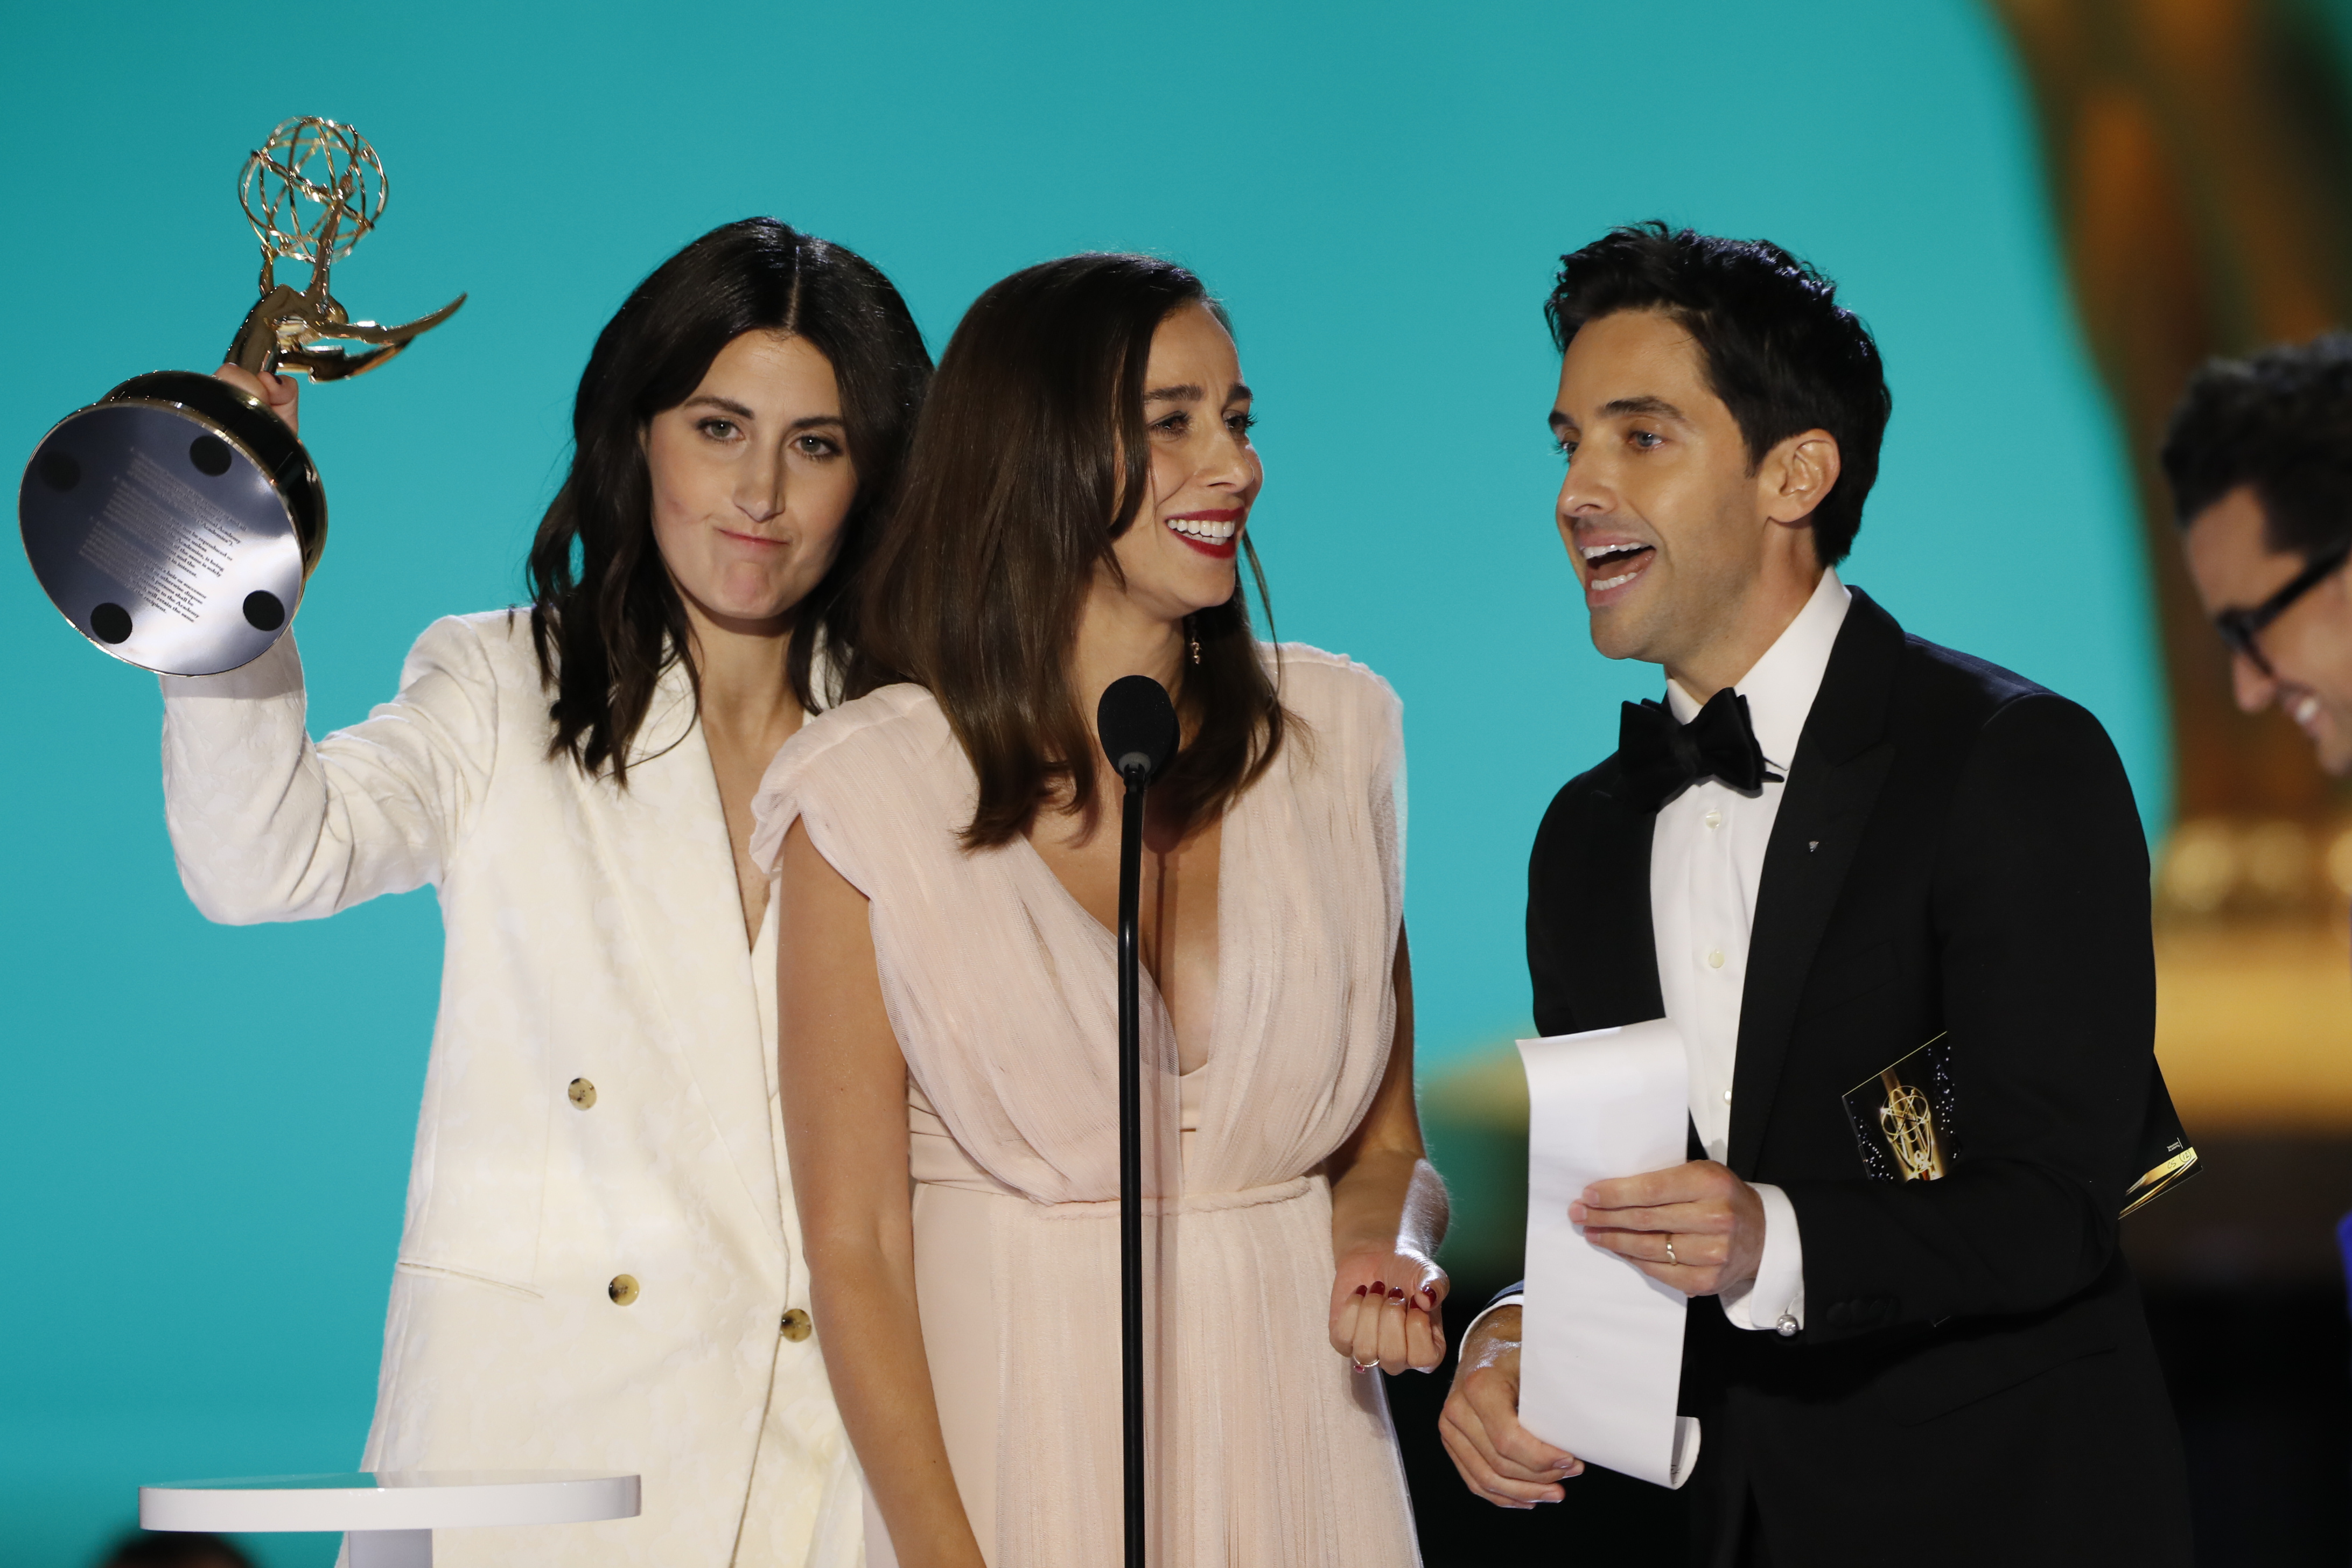 Lucia Aniello, Paul W. Downs, and Jen Statsky at an event for The 73rd Primetime Emmy Awards (2021)